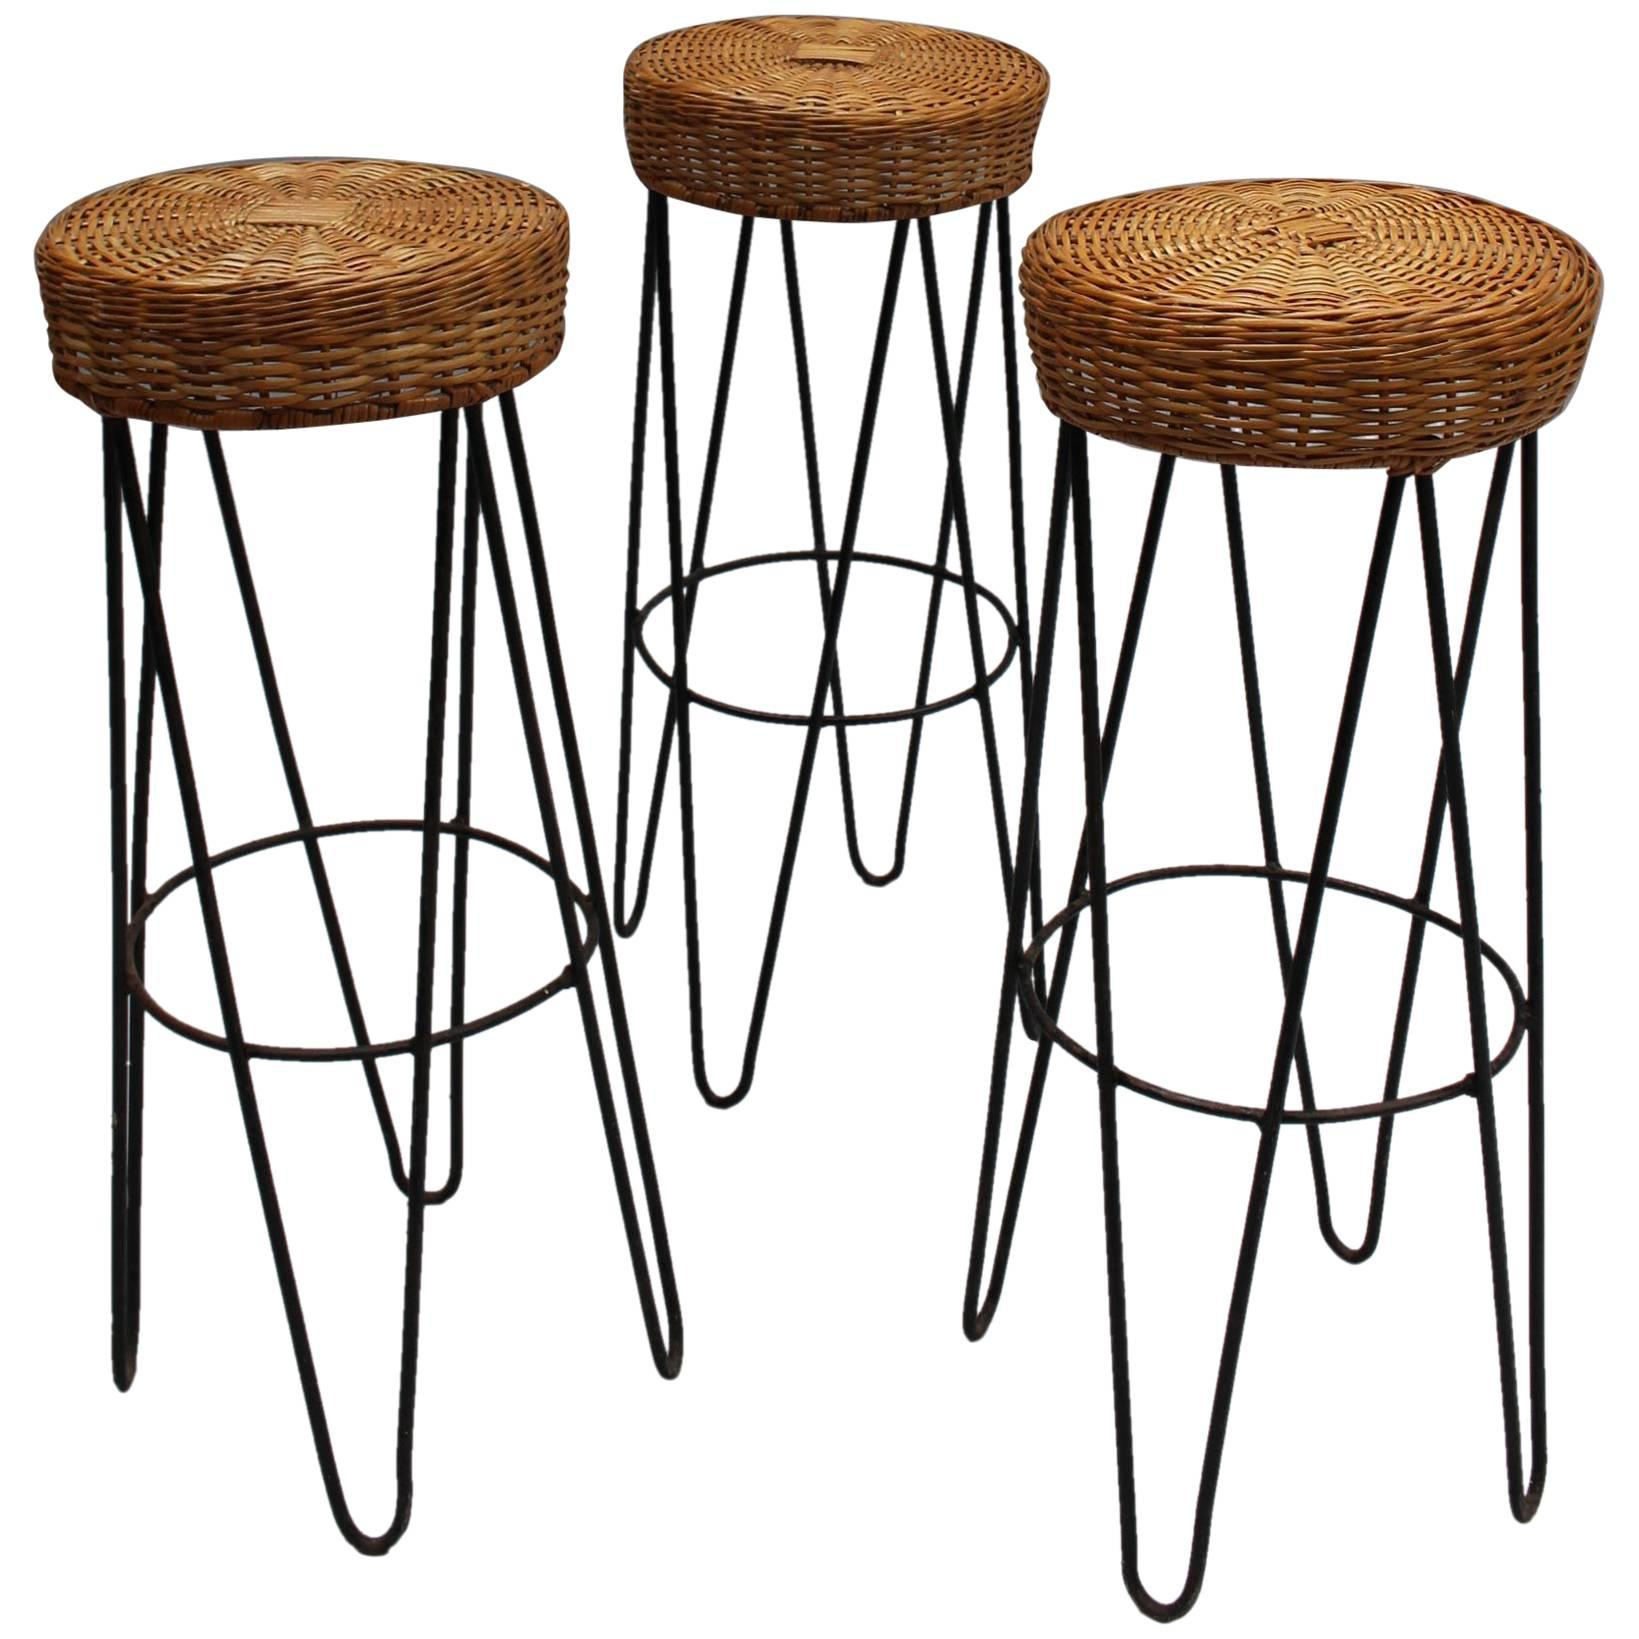 Three French Black Metal and Rattan Bar Stools 1950s For Sale at